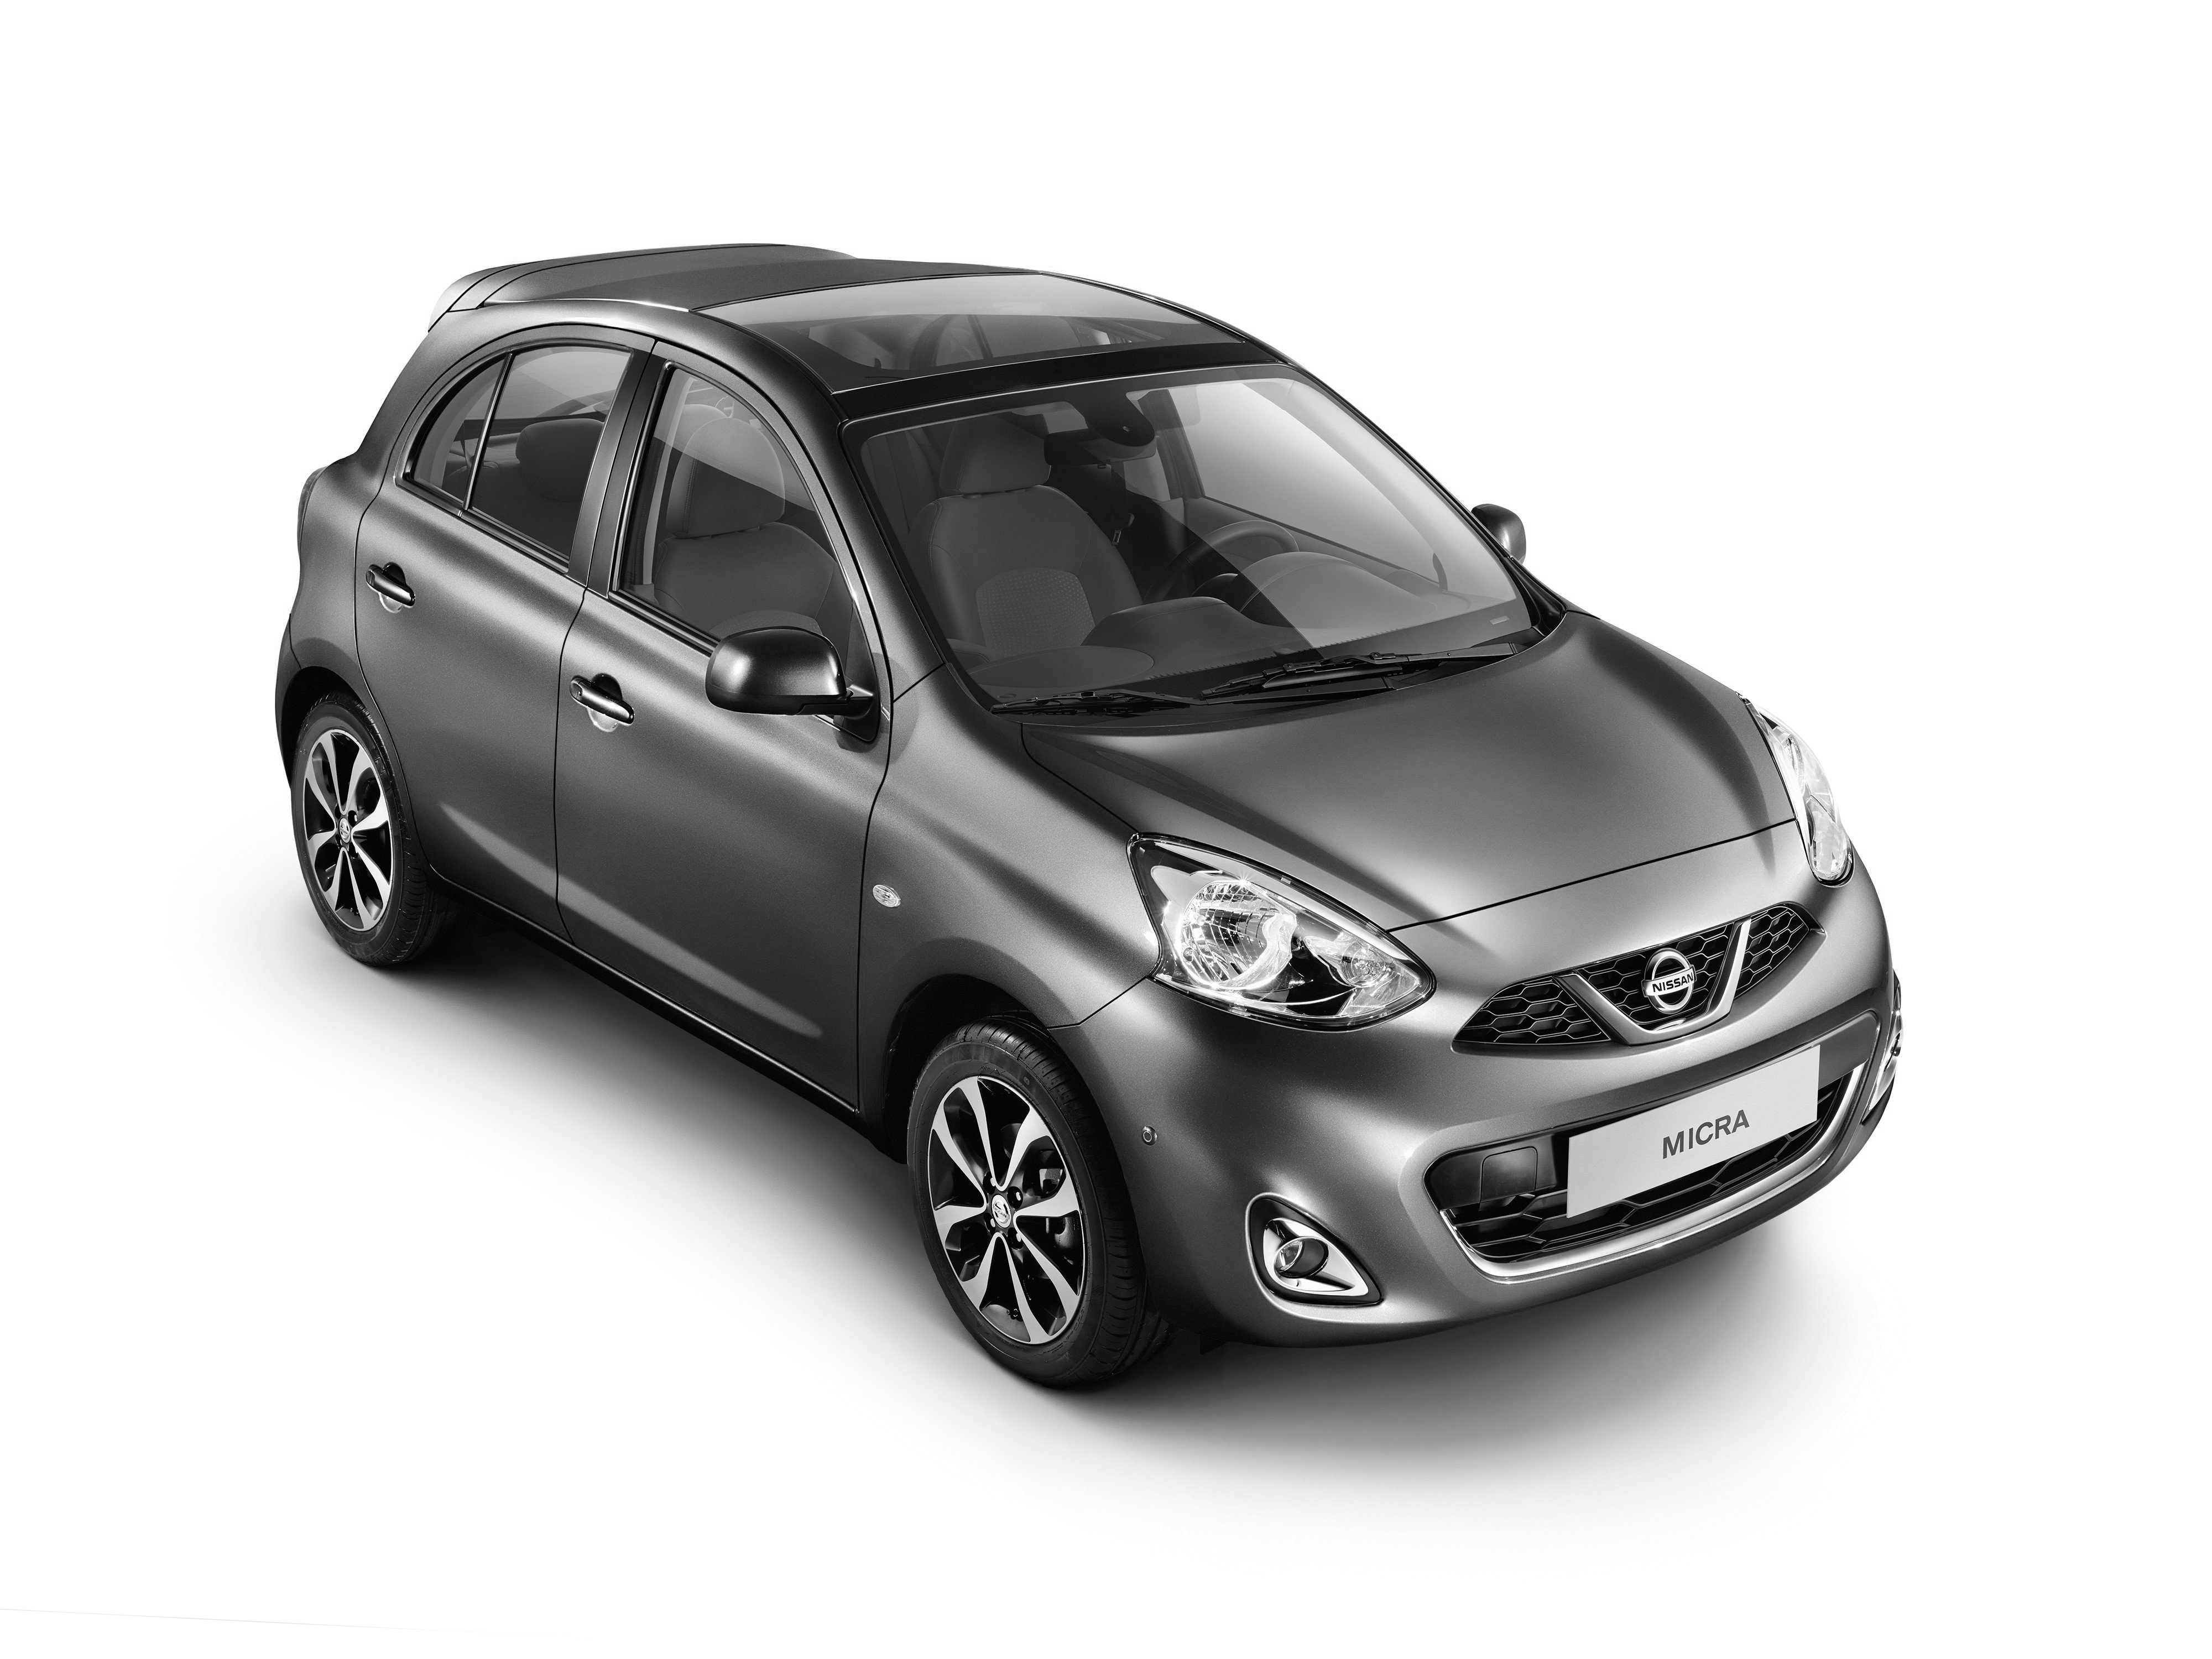 nissan leasing angebote ohne anzahlung | dmf leasing